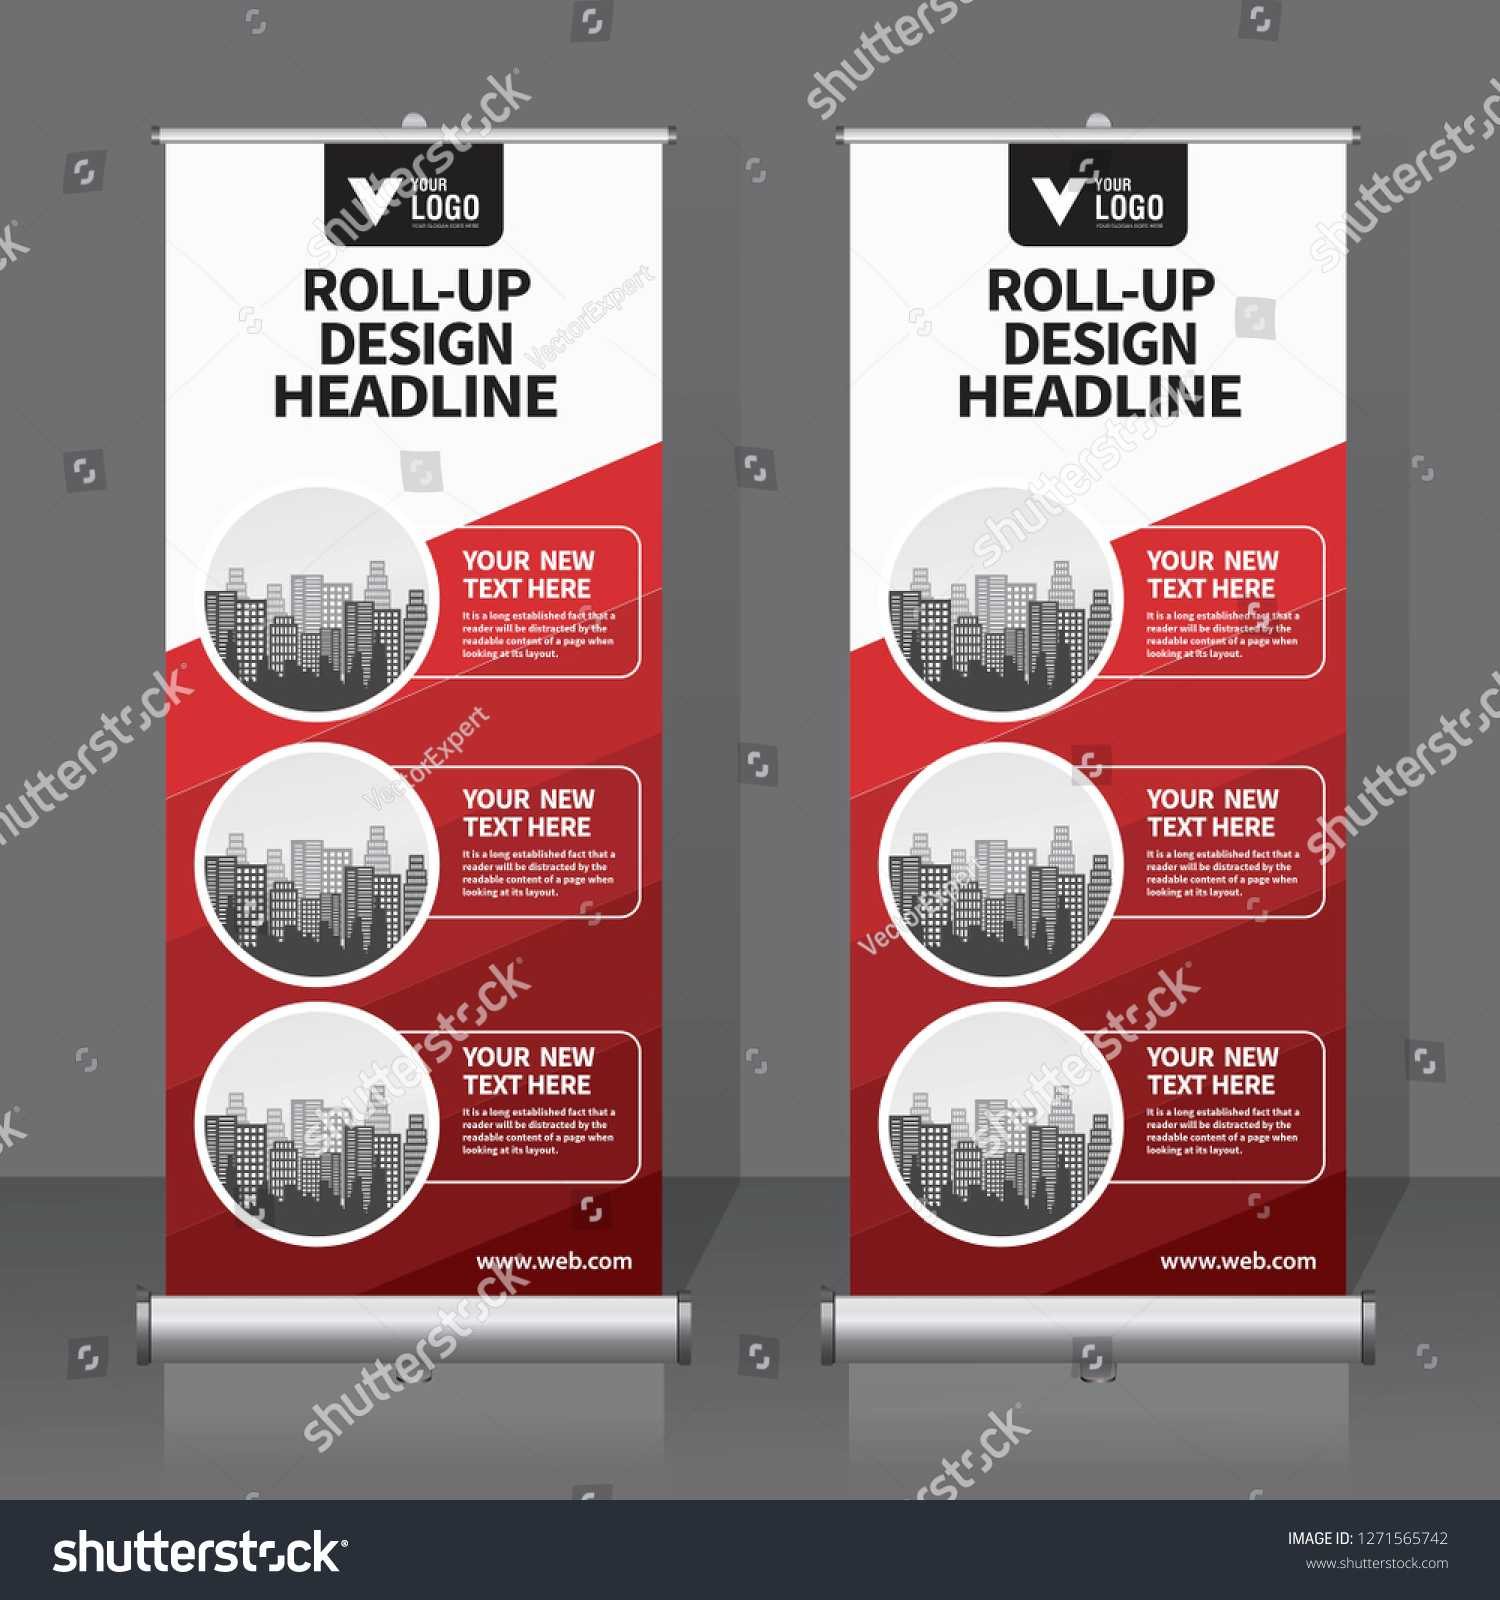 Roll Banner Design Template Vertical Abstract Stock Vector throughout Retractable Banner Design Templates